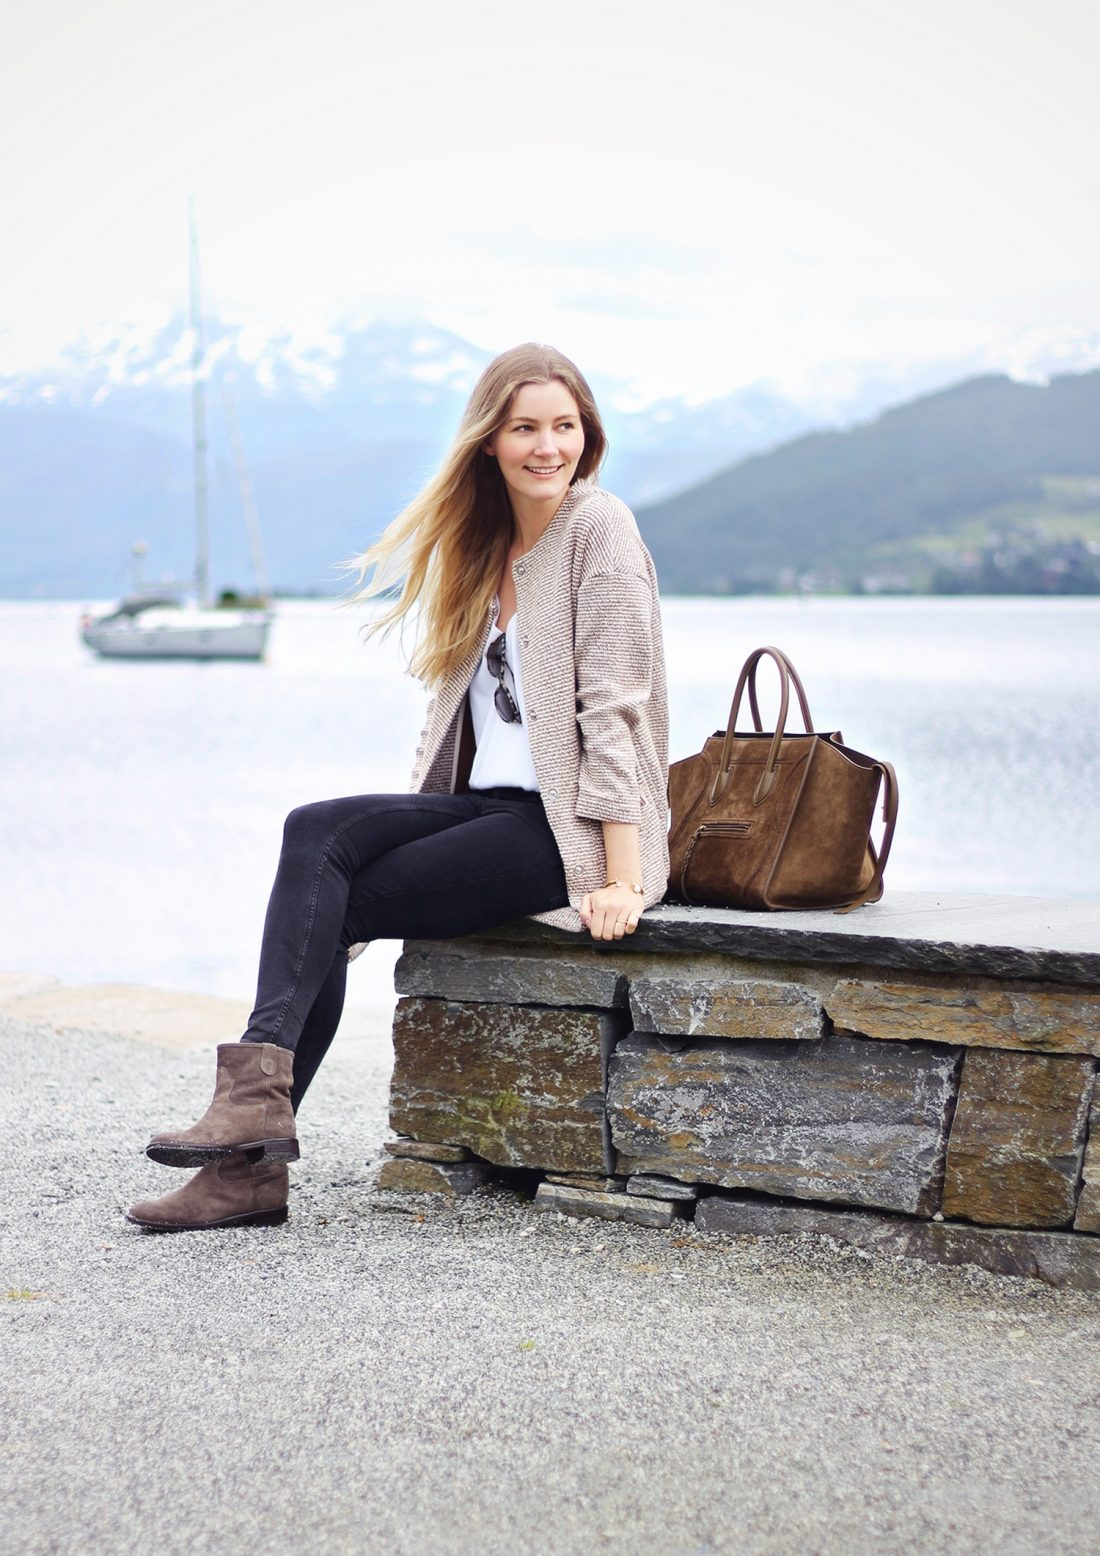 outfit-norge@2x.jpg